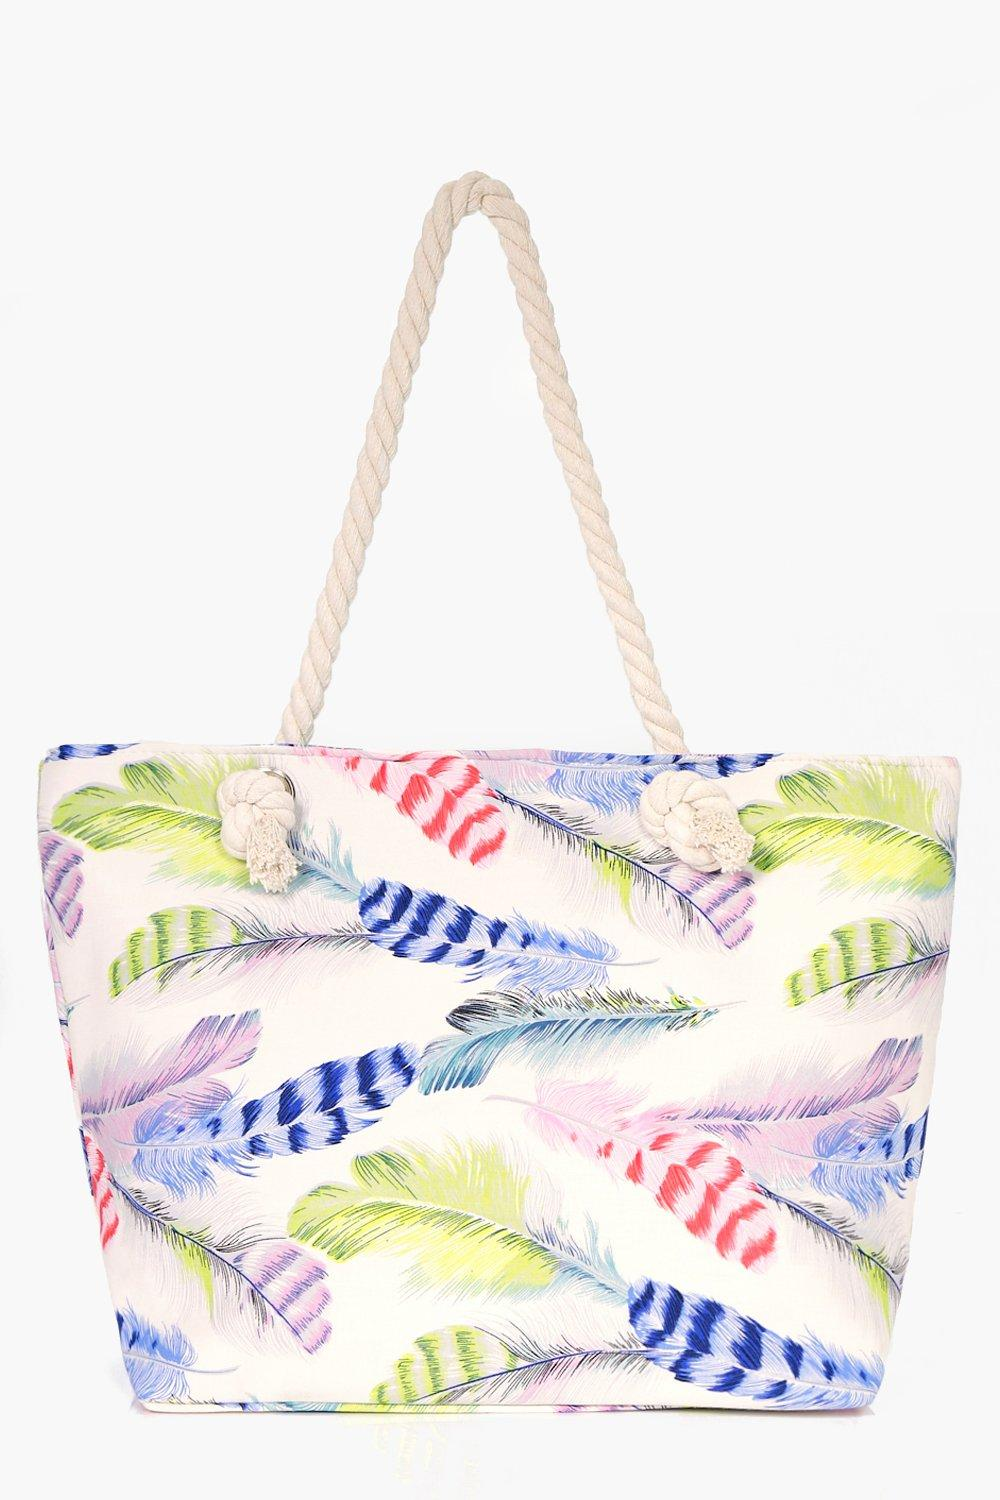 Feather Print Beach Bag - blue - Alexis Feather Pr